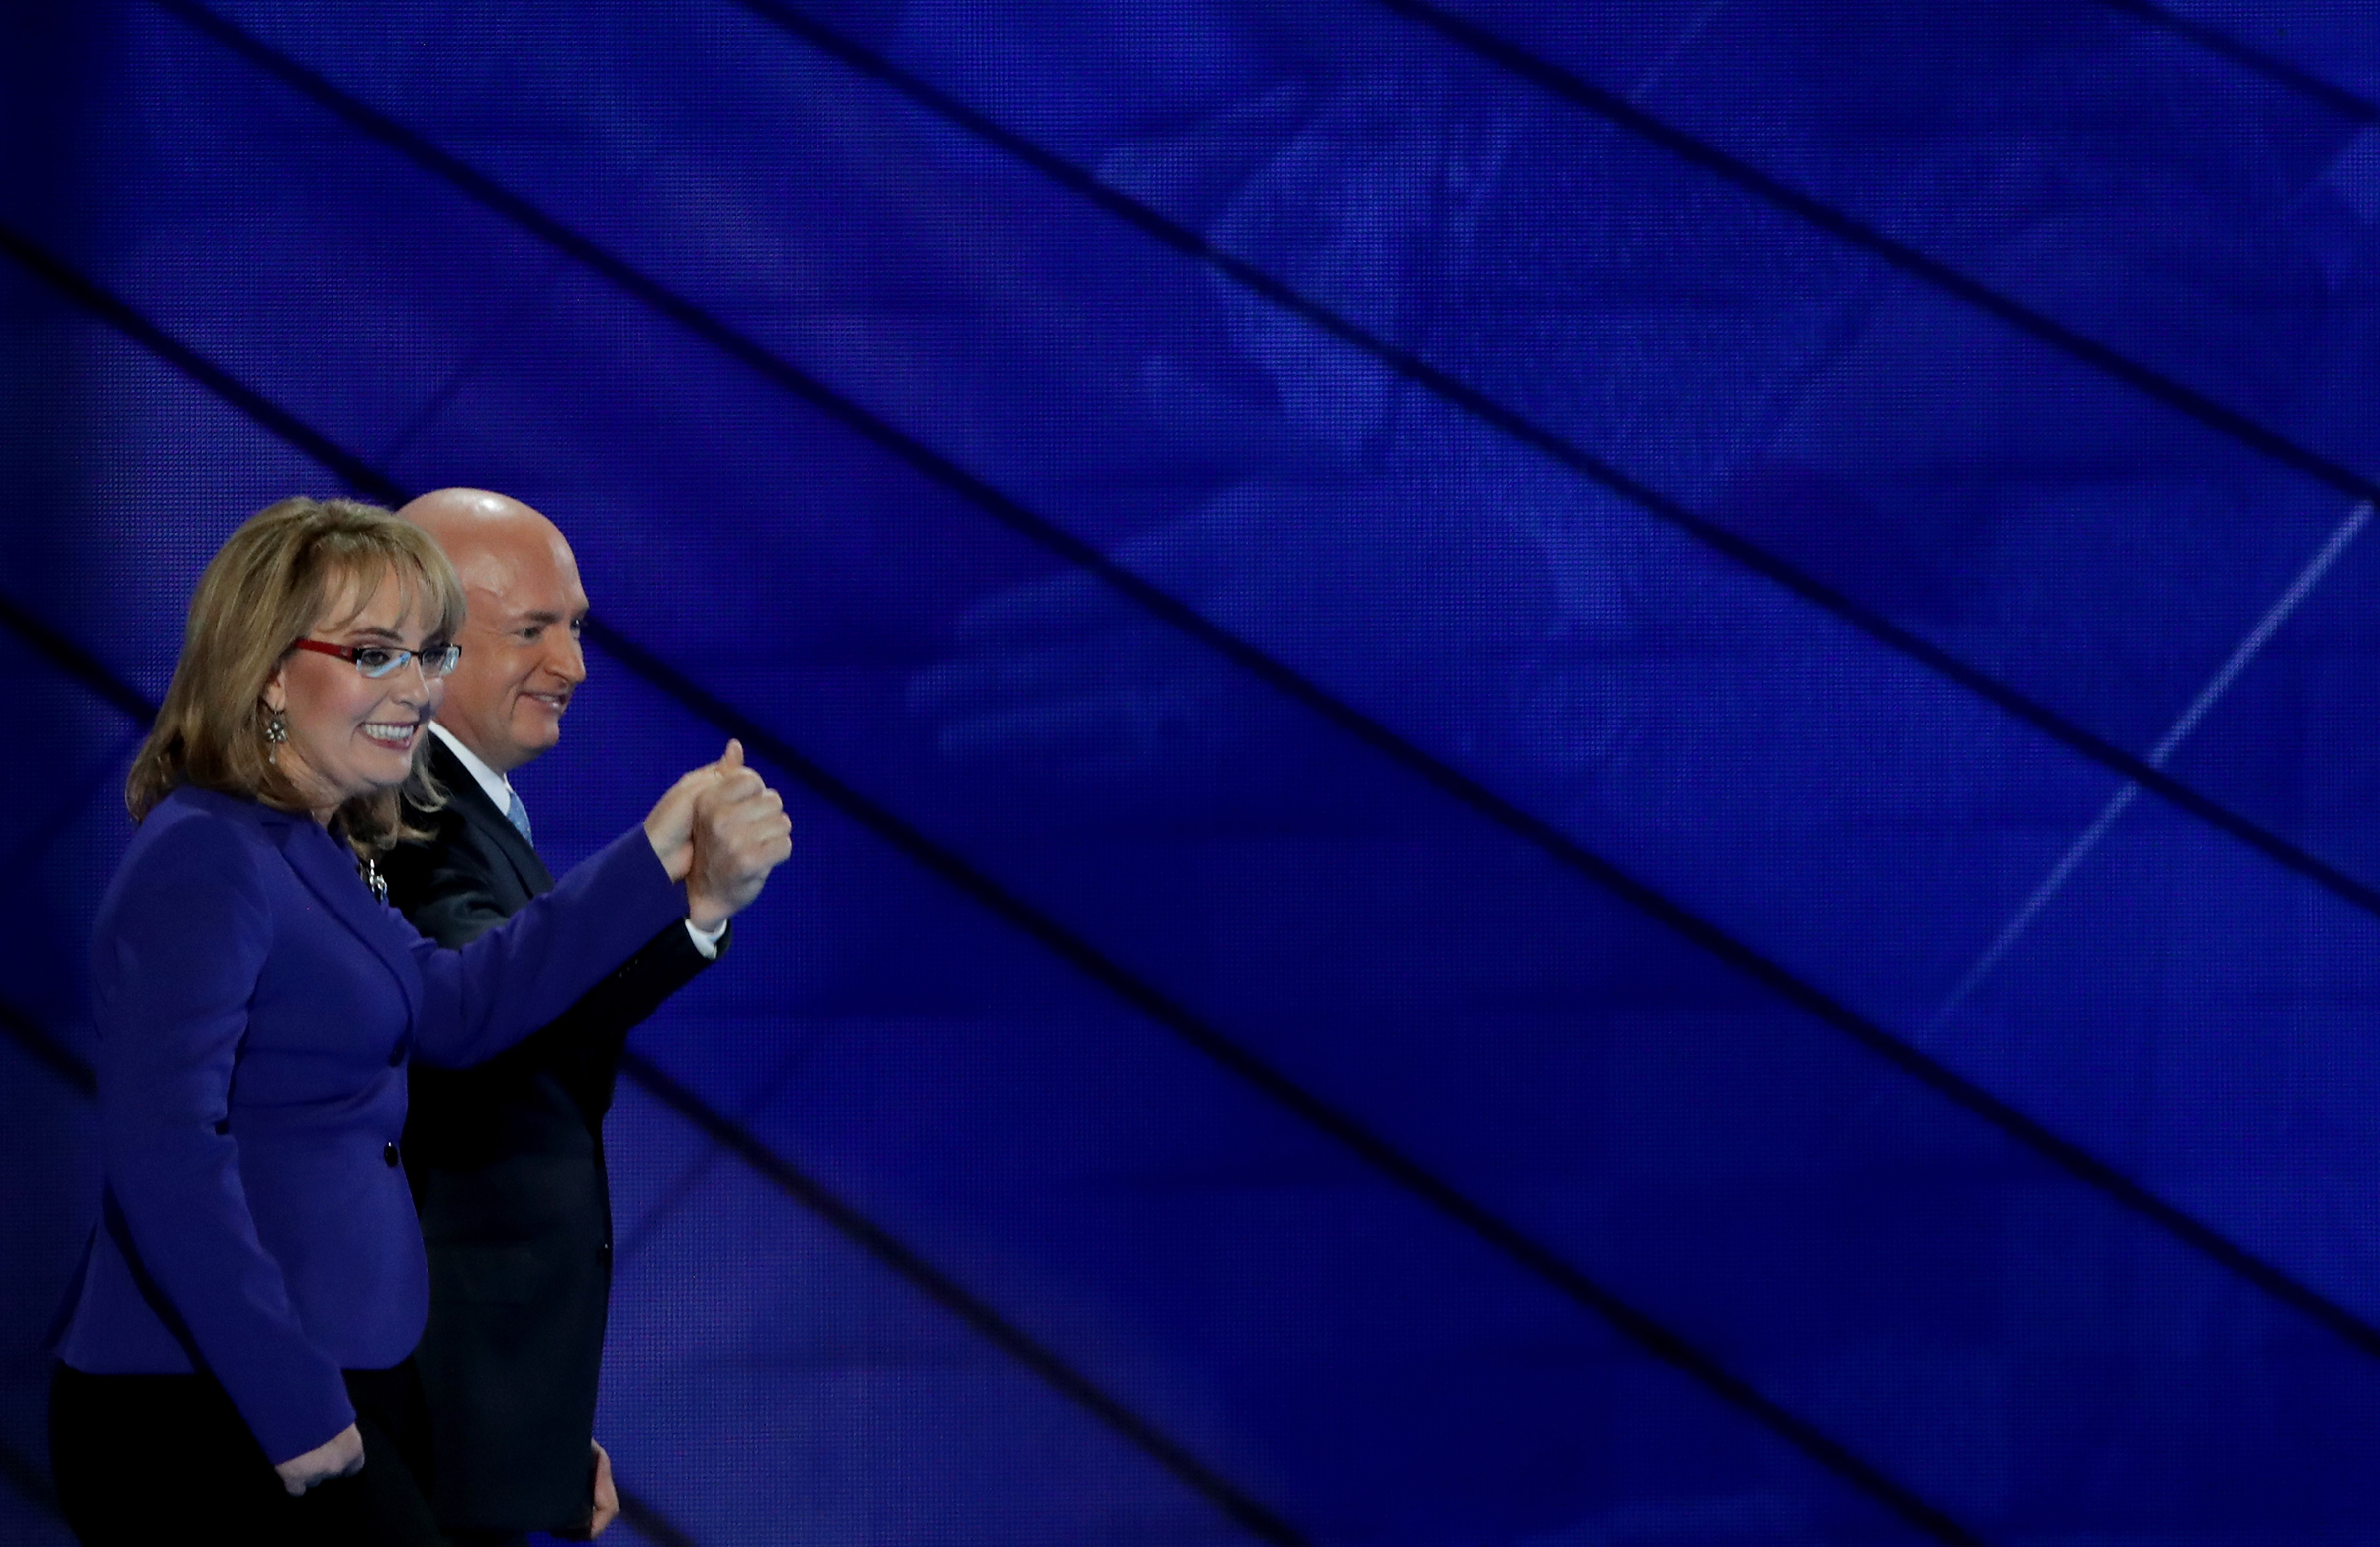 Former Congresswoman Gabby Giffords and her husband, retired NASA Astronaut and Navy Captain Mark Kelly, hold hands as they walk off stage on the third day of the Democratic National Convention, July 27, 2016 in Philadelphia.